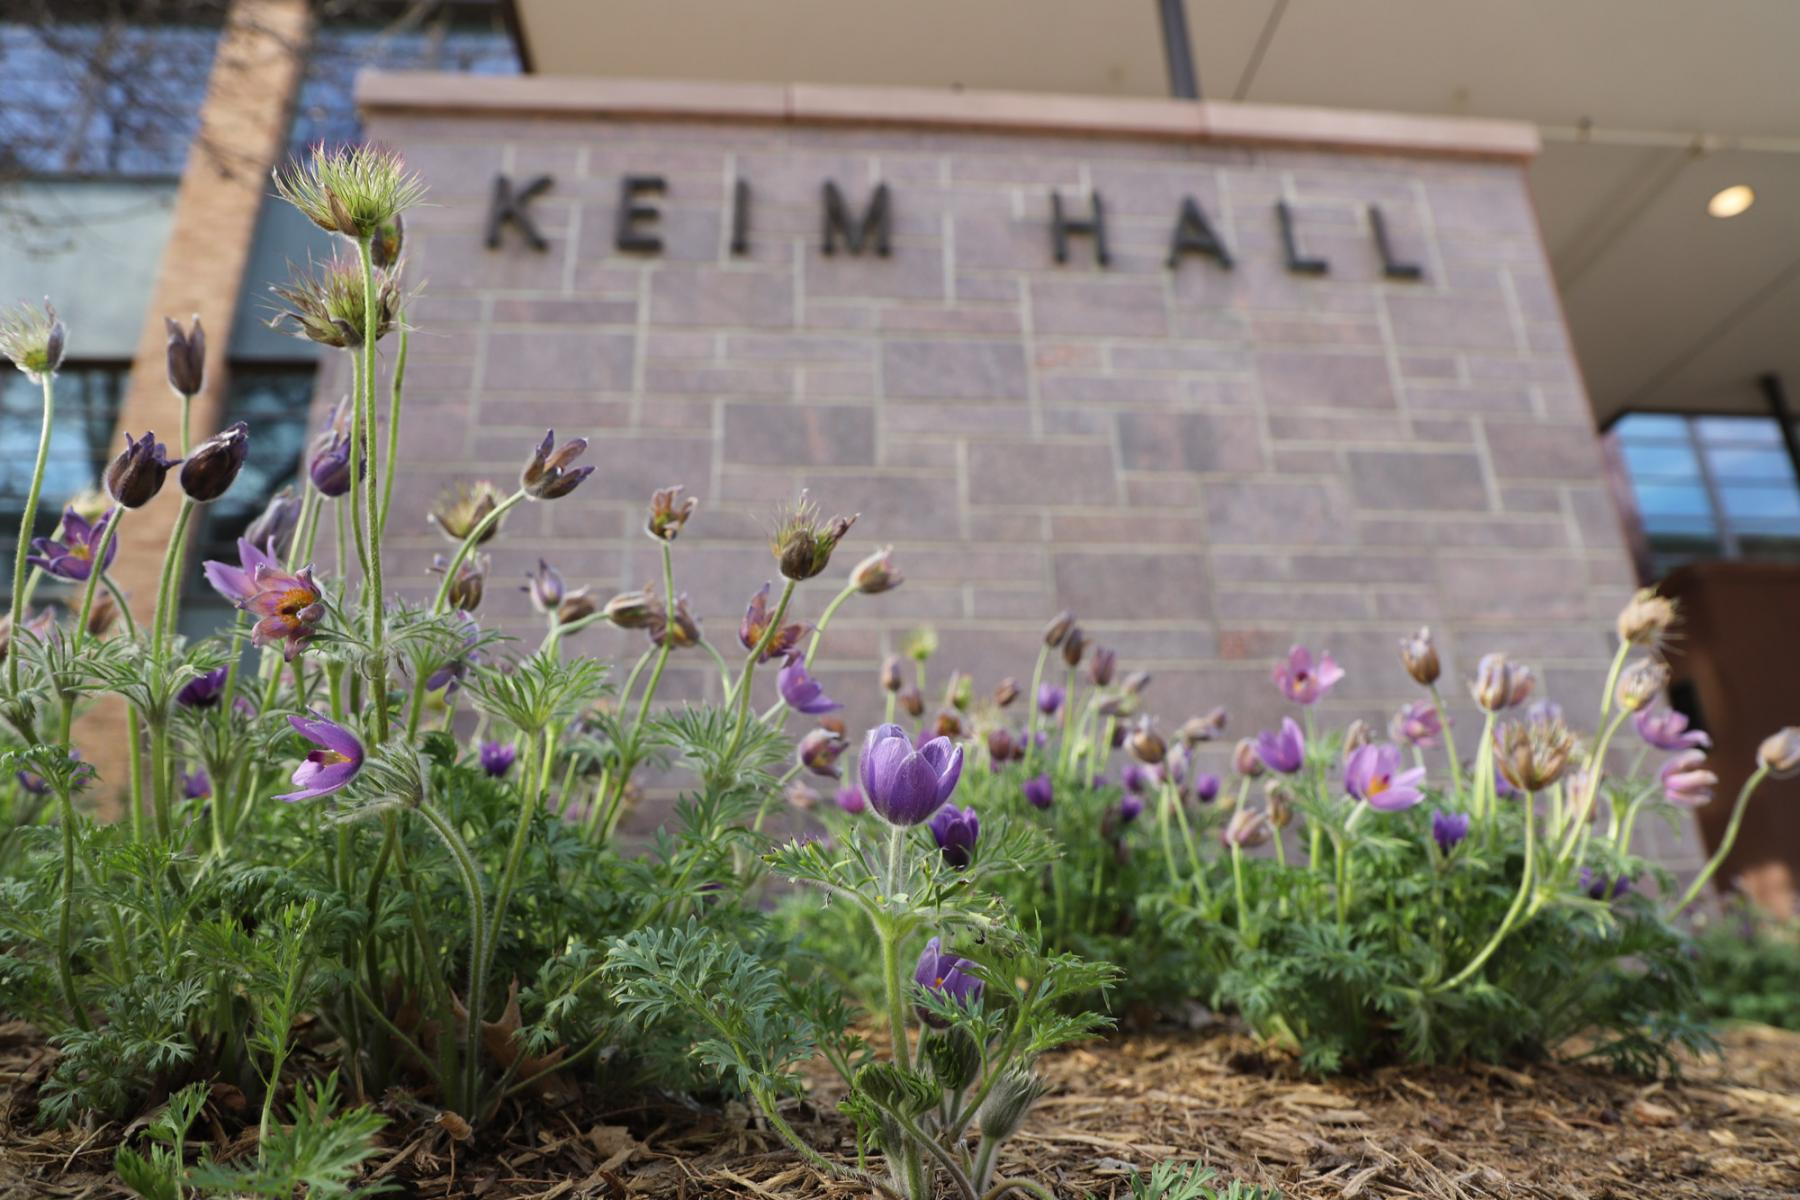 Pulsatilla patens, pasque flower in front of Keim Hall, East Campus